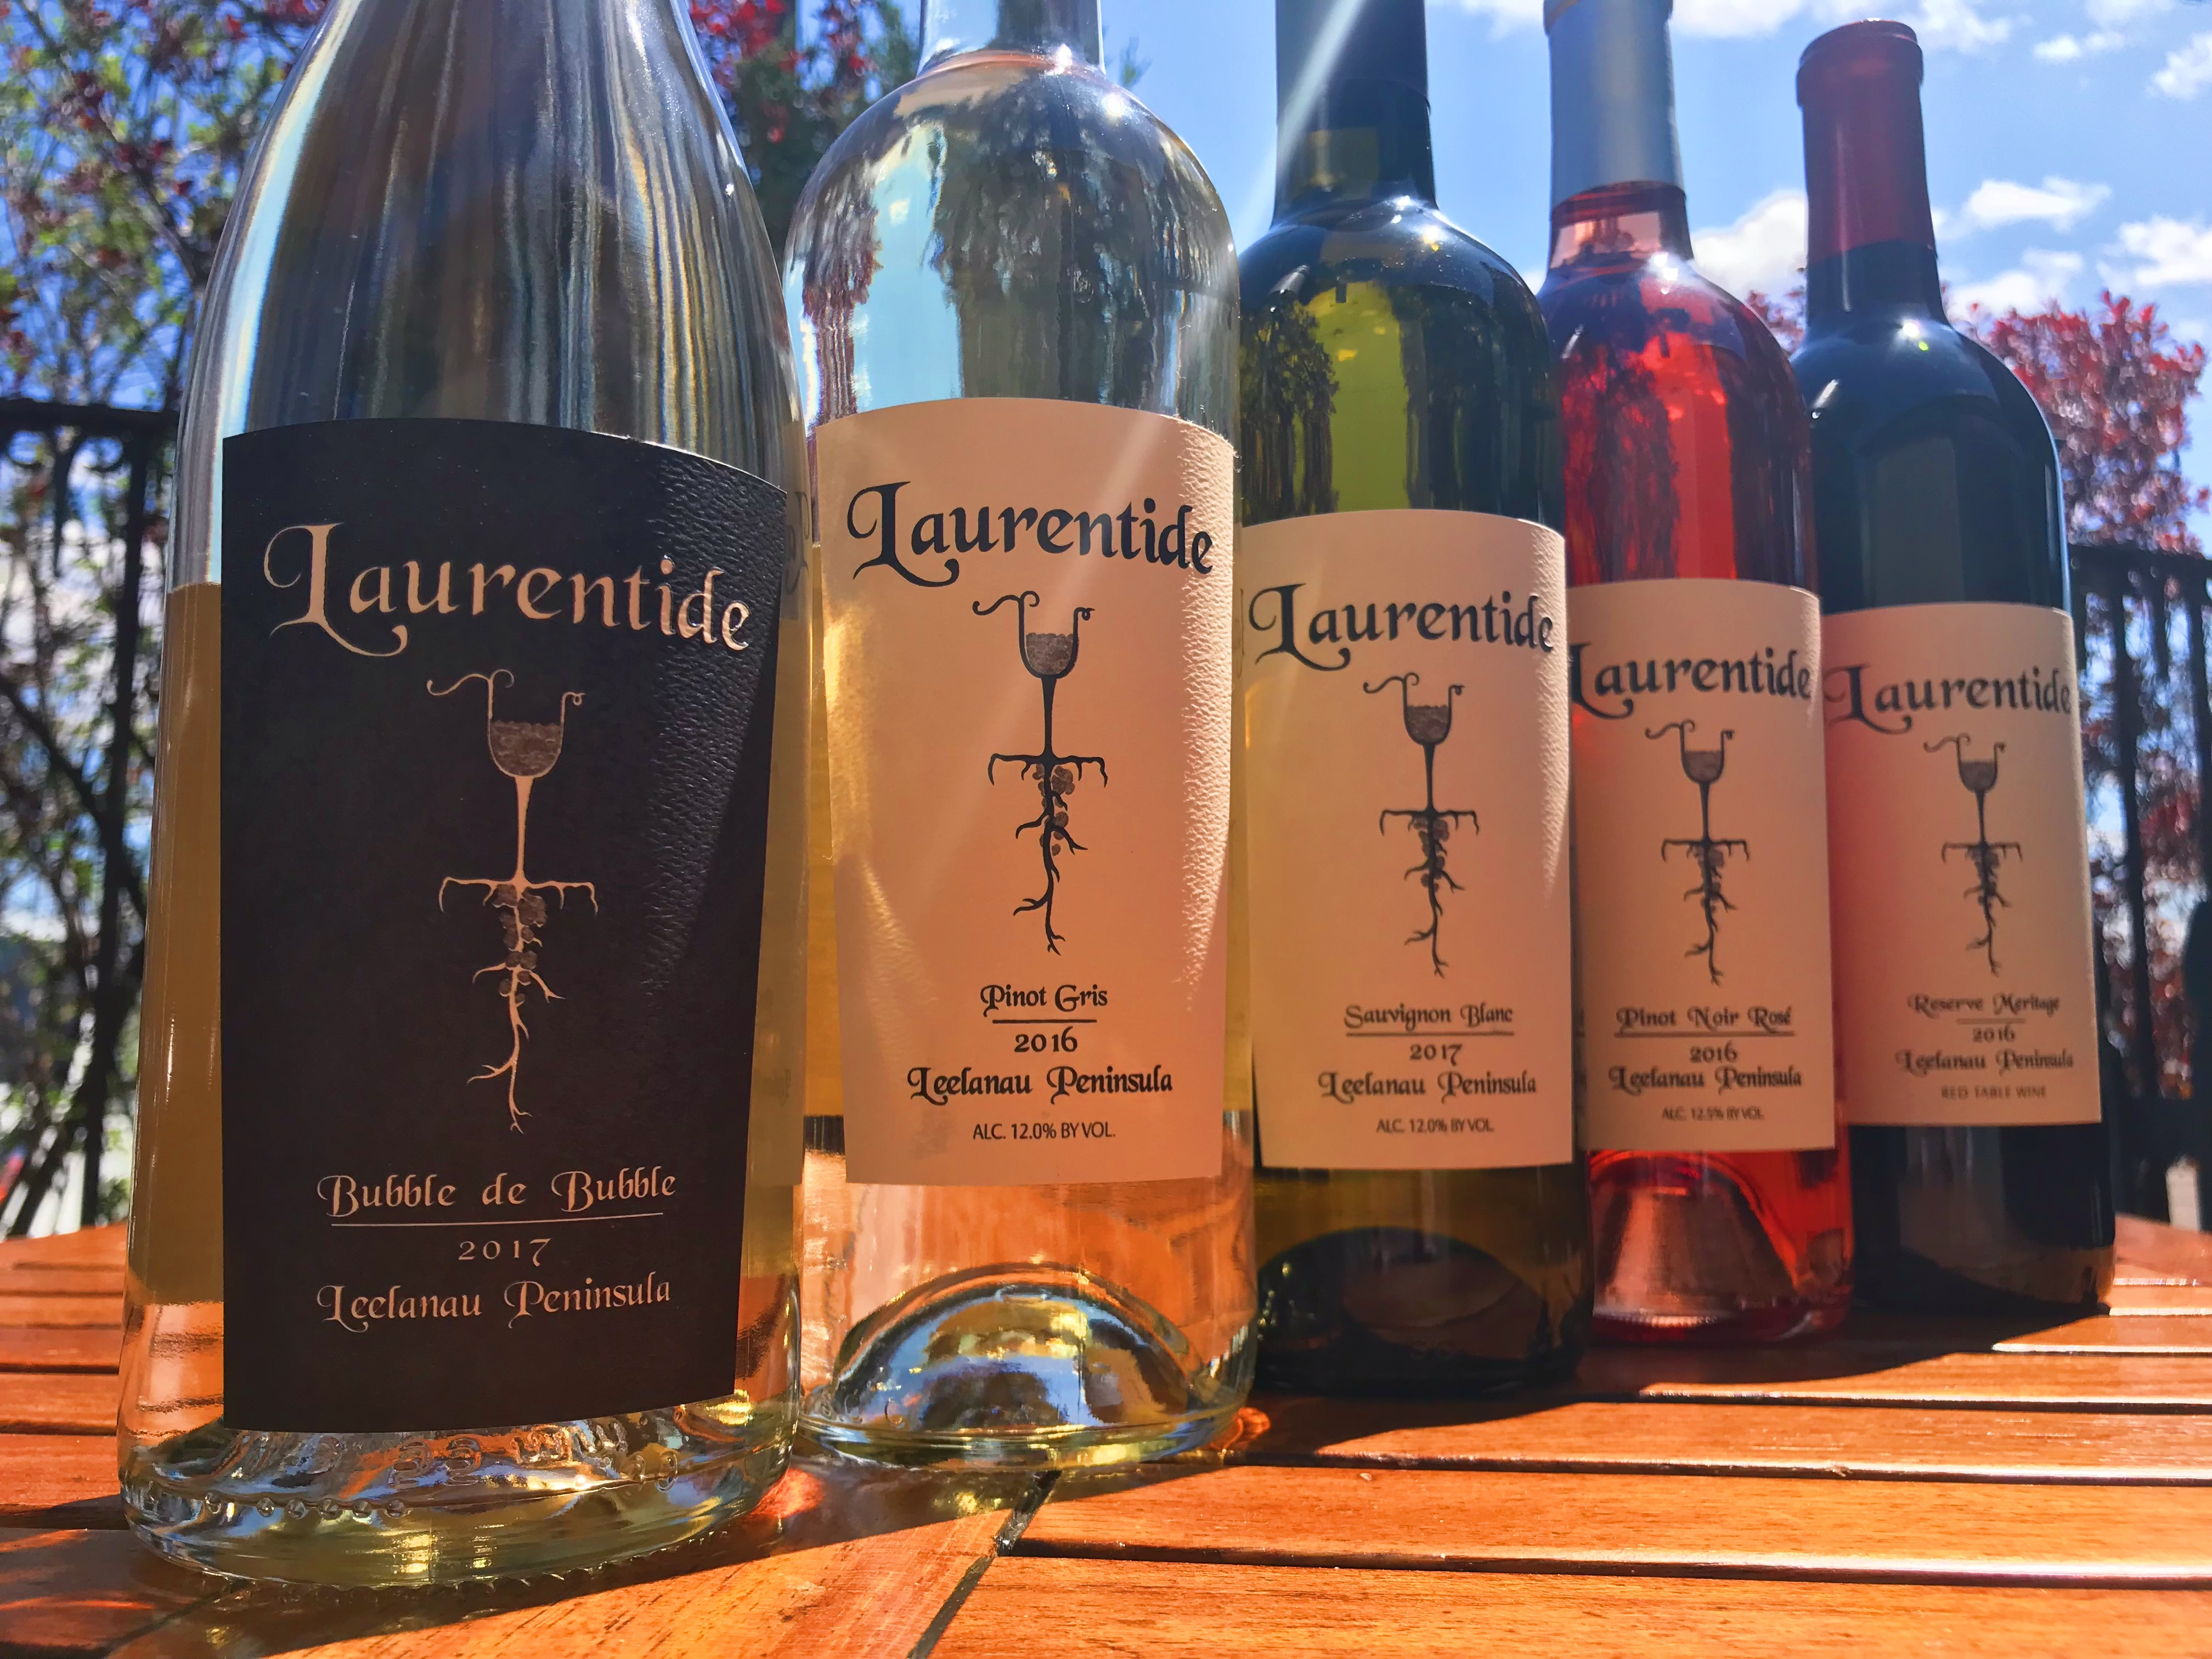 A row of wines from Laurentide Winery.